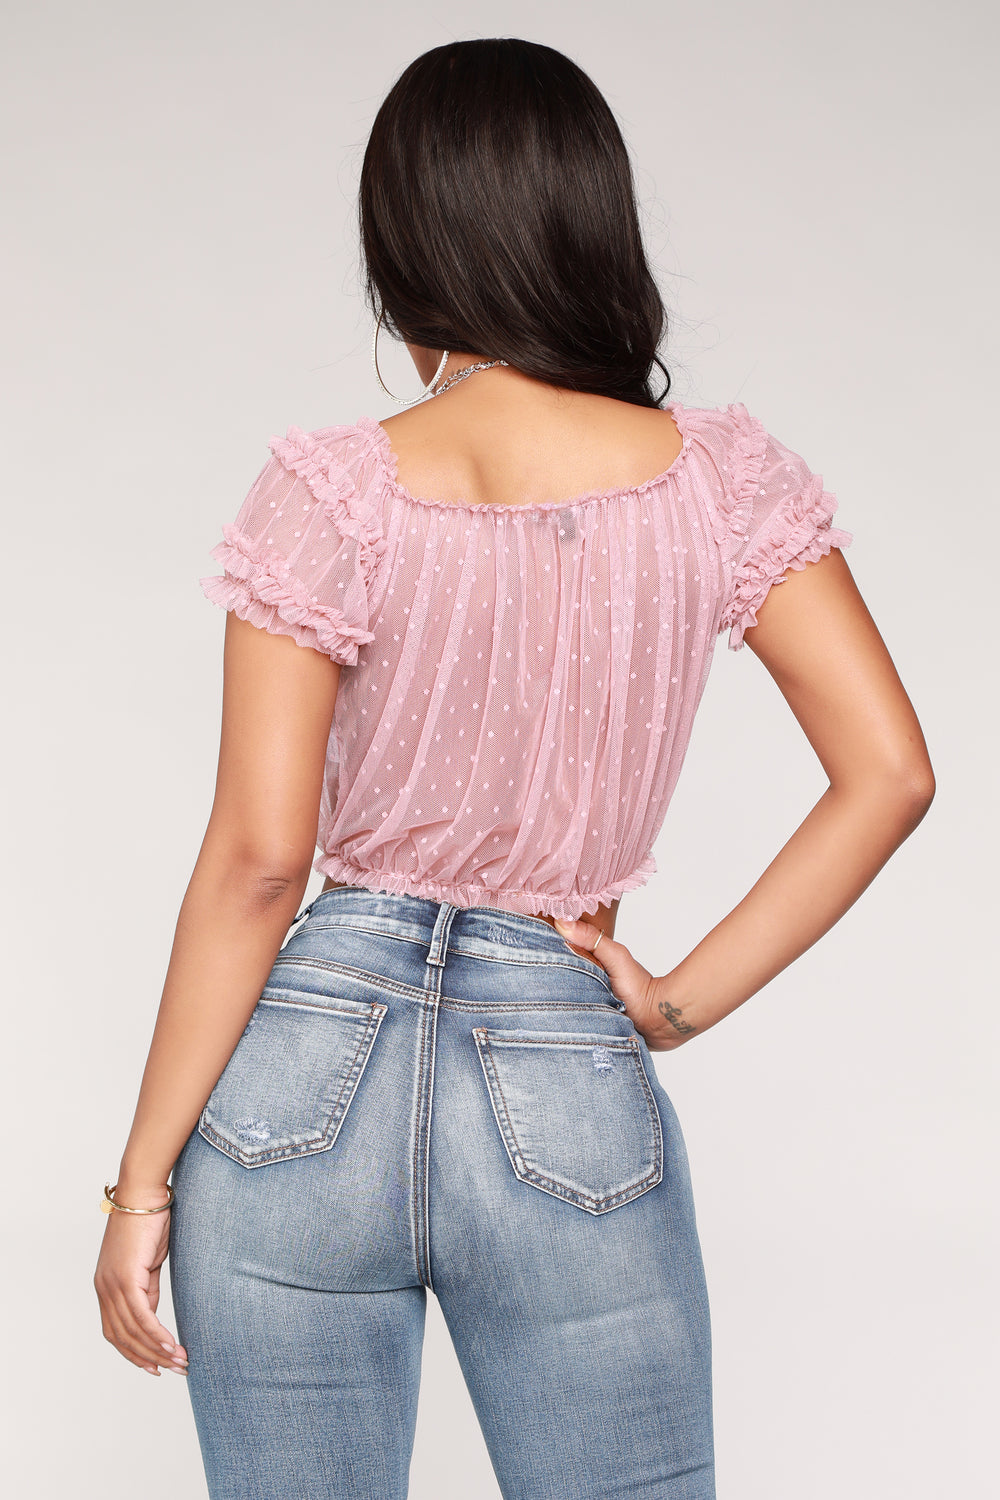 Sweet Dreams Lacey Top - Mauve